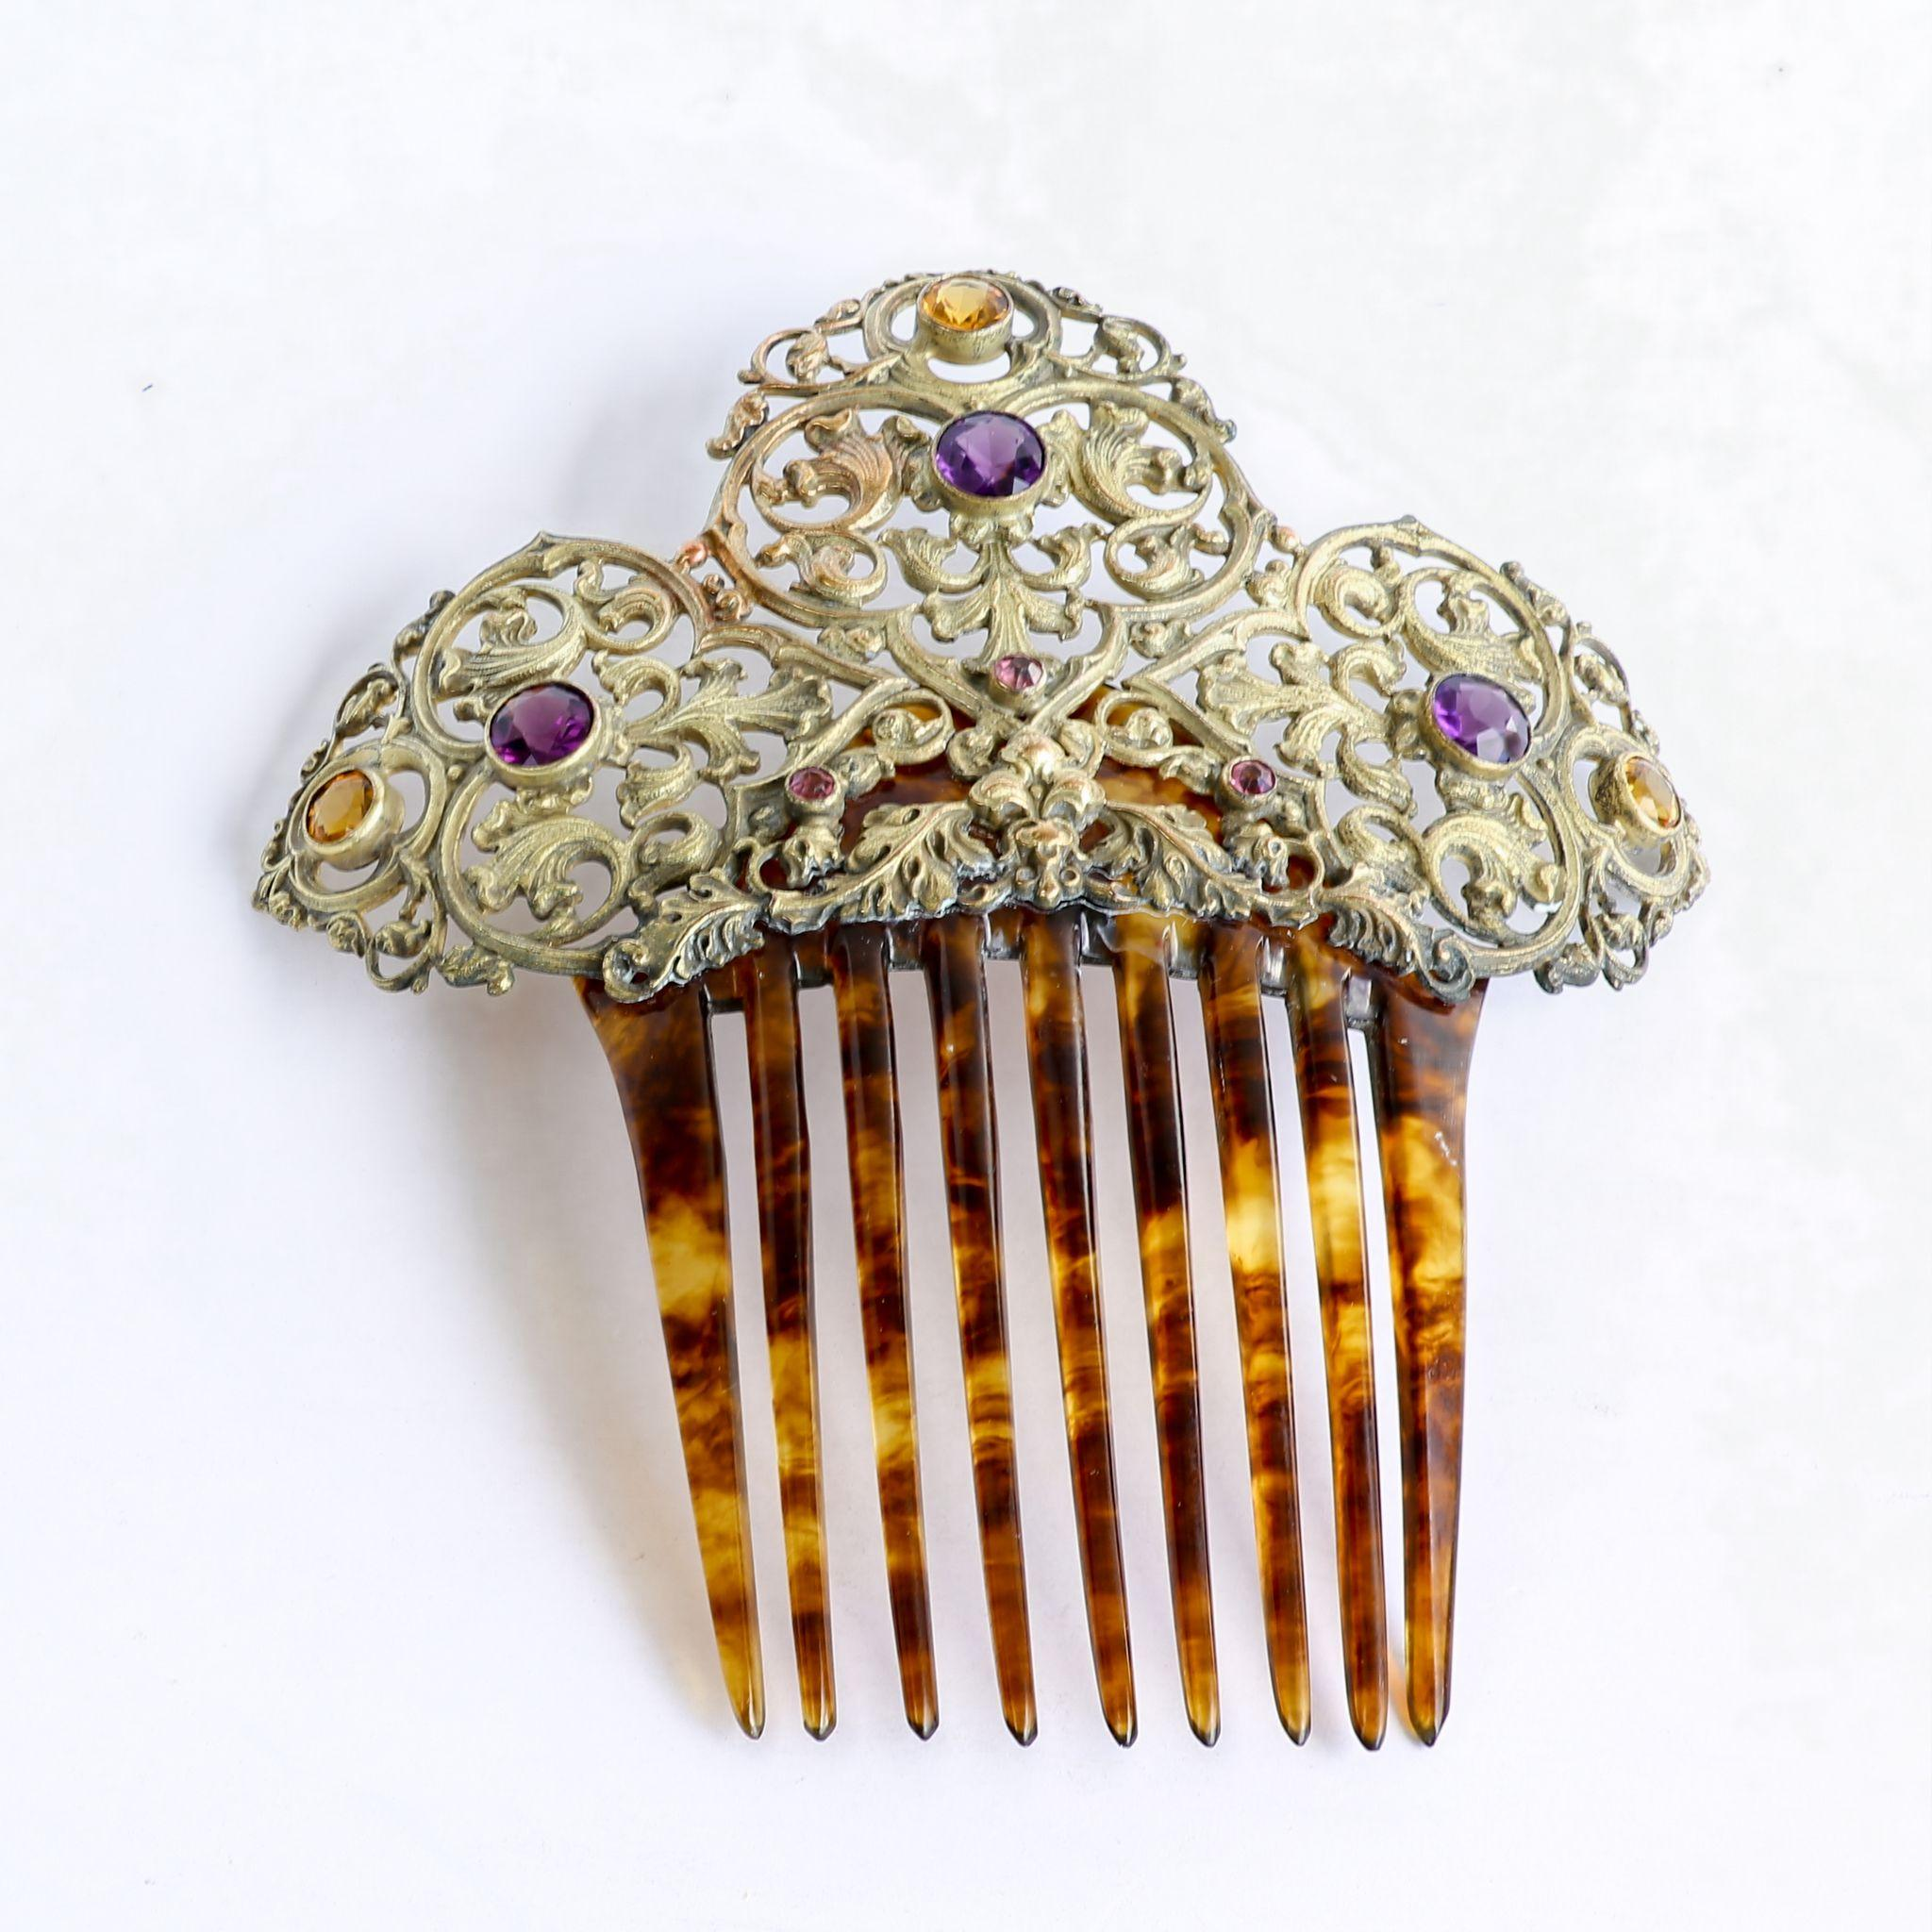 Circa 1890 Lady's Jeweled Hair Comb from the-vault on Ruby Lane